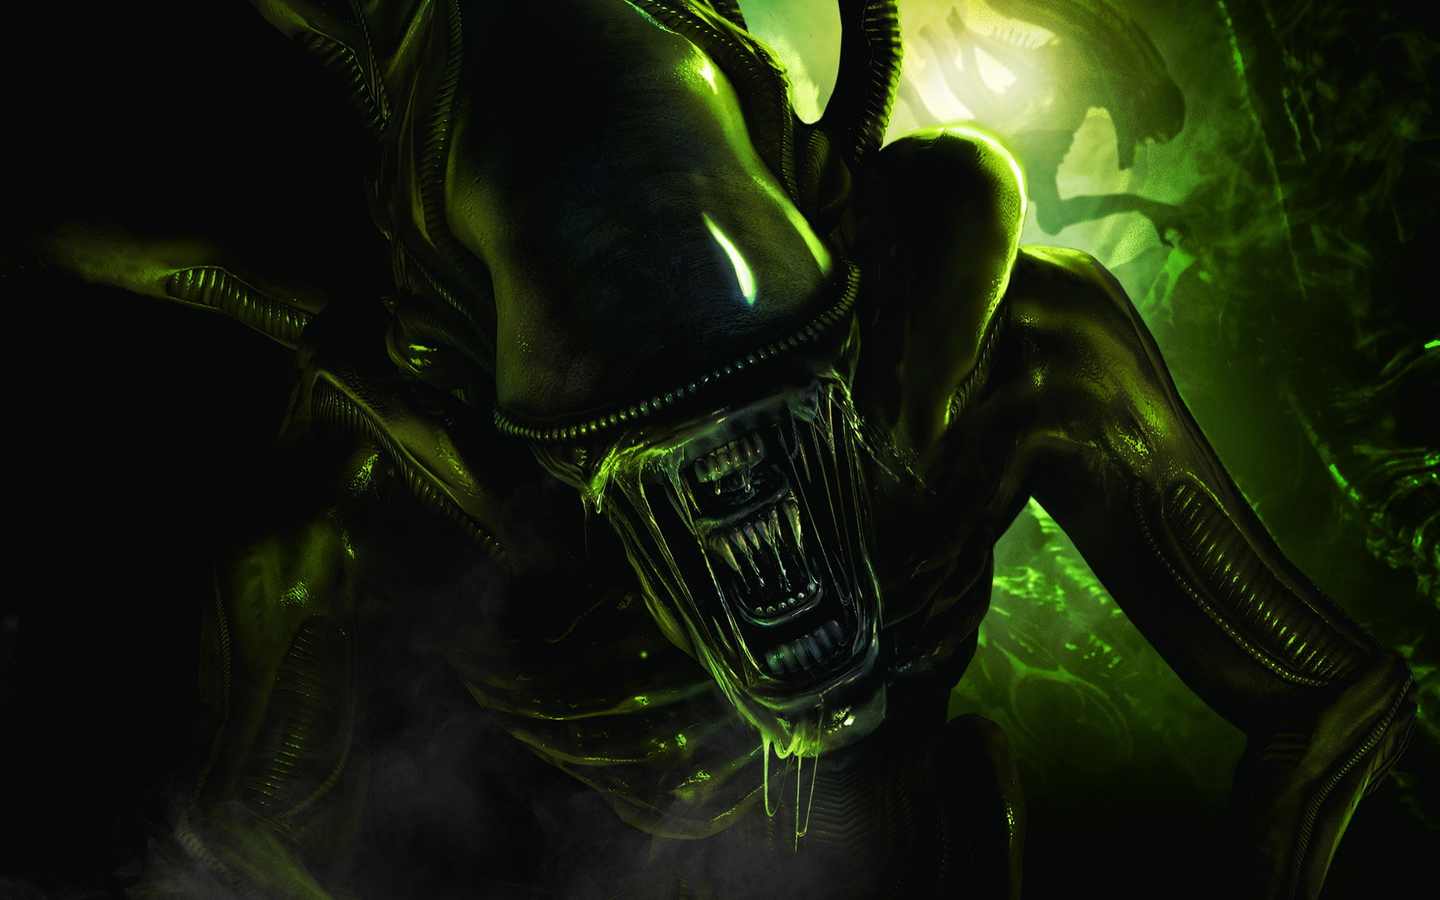 windows 7 alien theme with aliens colonial marines wallpapers